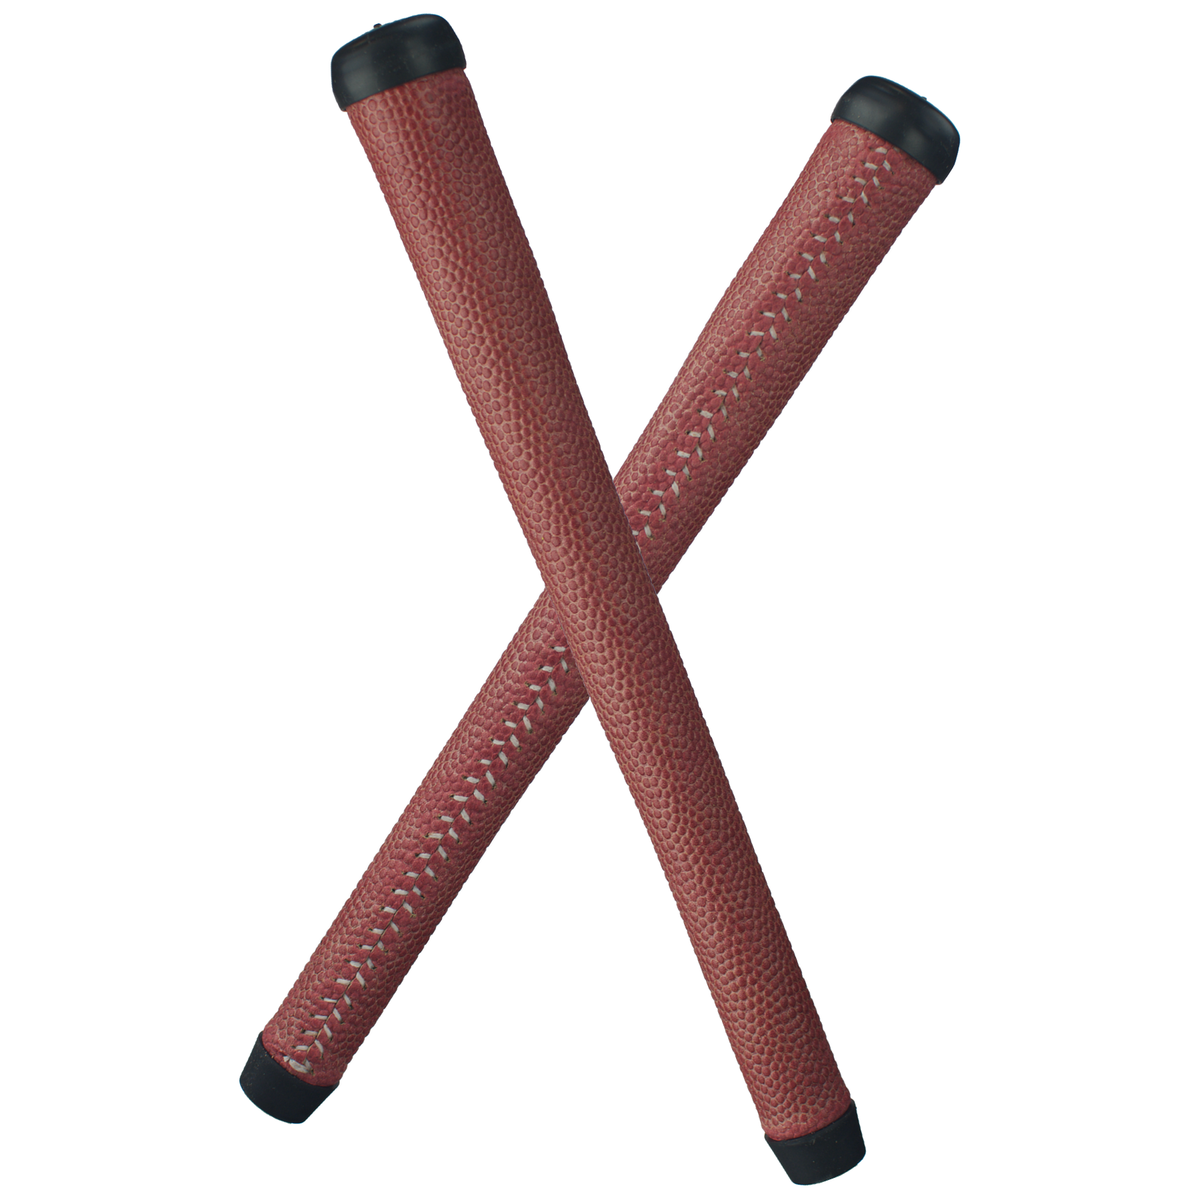 Gridiron Golf Grip (Available 11/23)